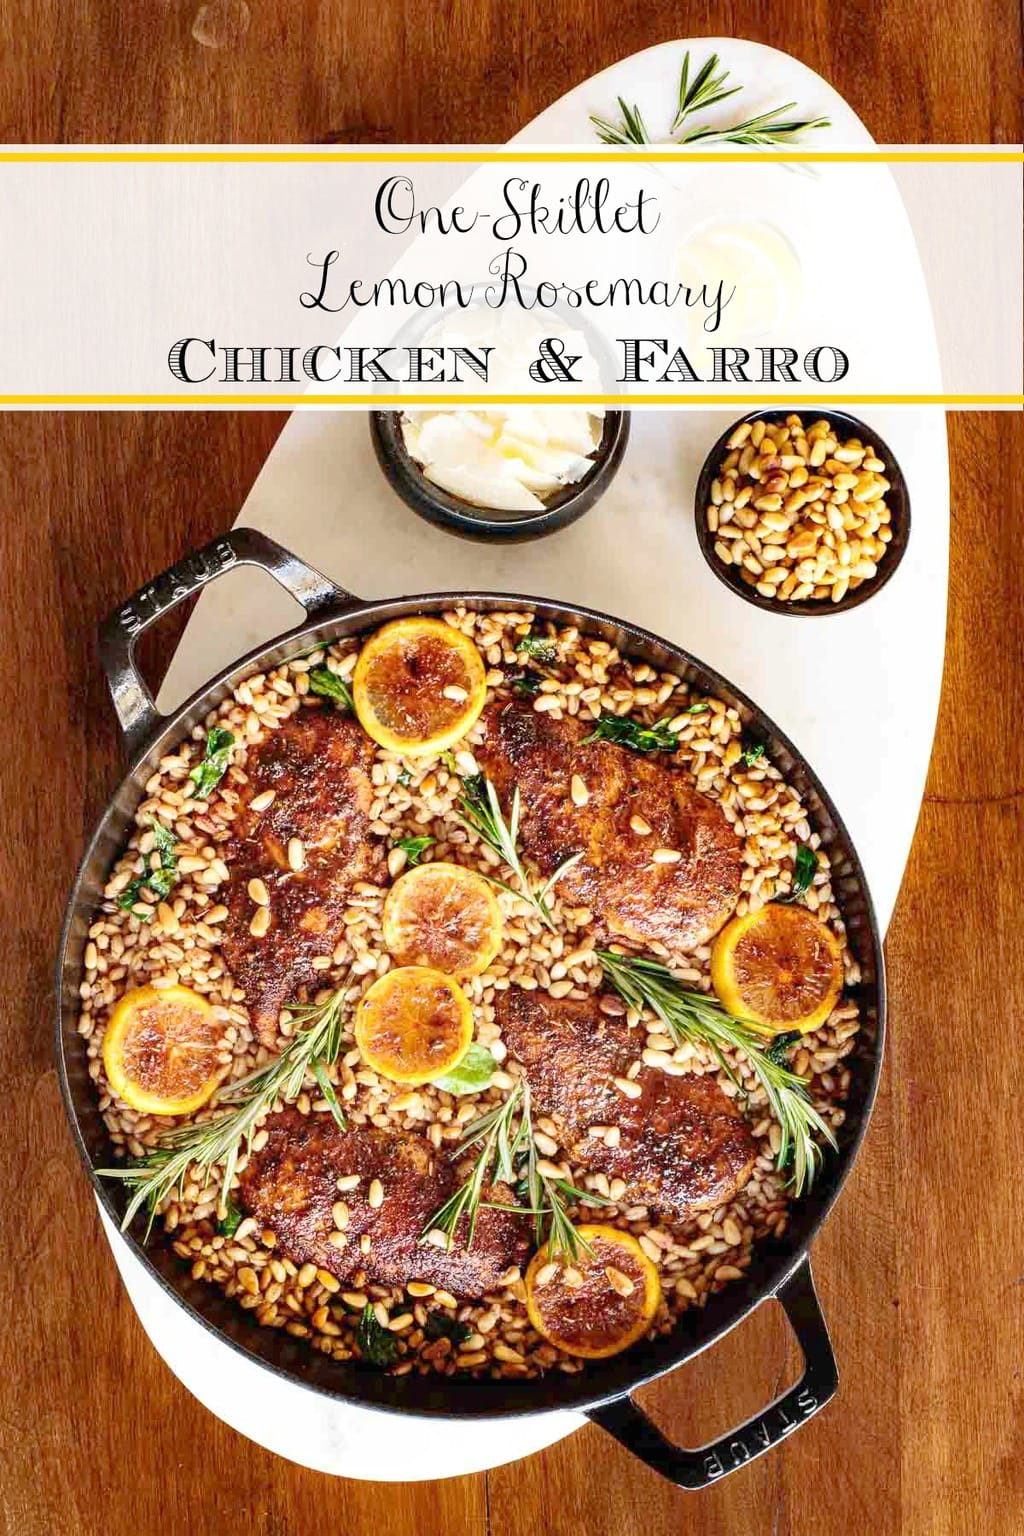 With juicy, tender chicken, healthy farro and loads of fresh spinach, this hearty, delicious Lemon Rosemary Chicken and Farro is an easy meal in one pan! #lemonrosemarychicken, #chickenandfarro, #easychickenbreastdinner, #healthychickendinner